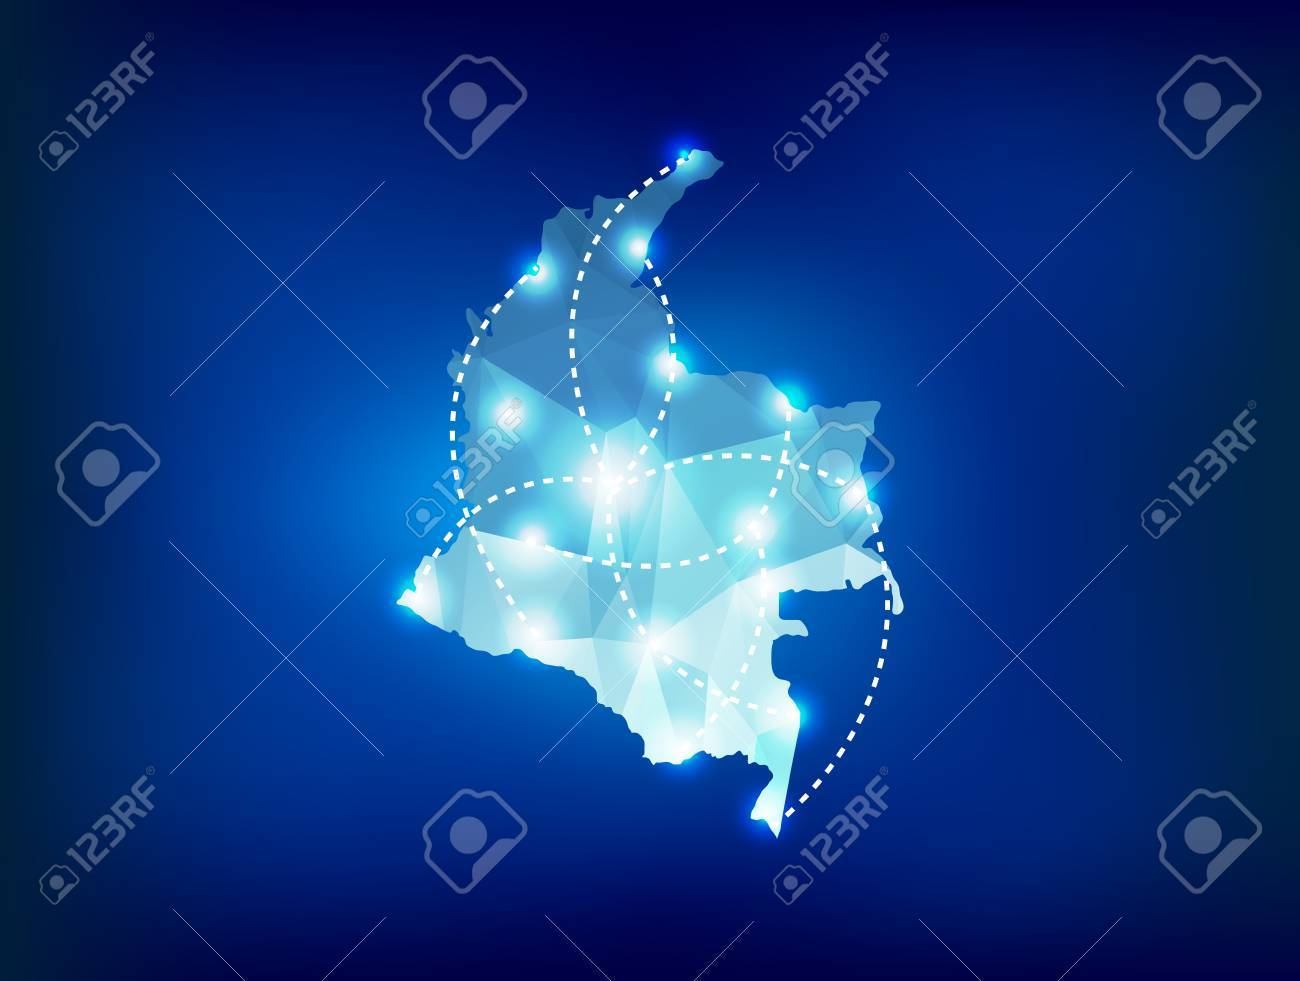 Colombia country map polygonal with spot lights places - 31325451